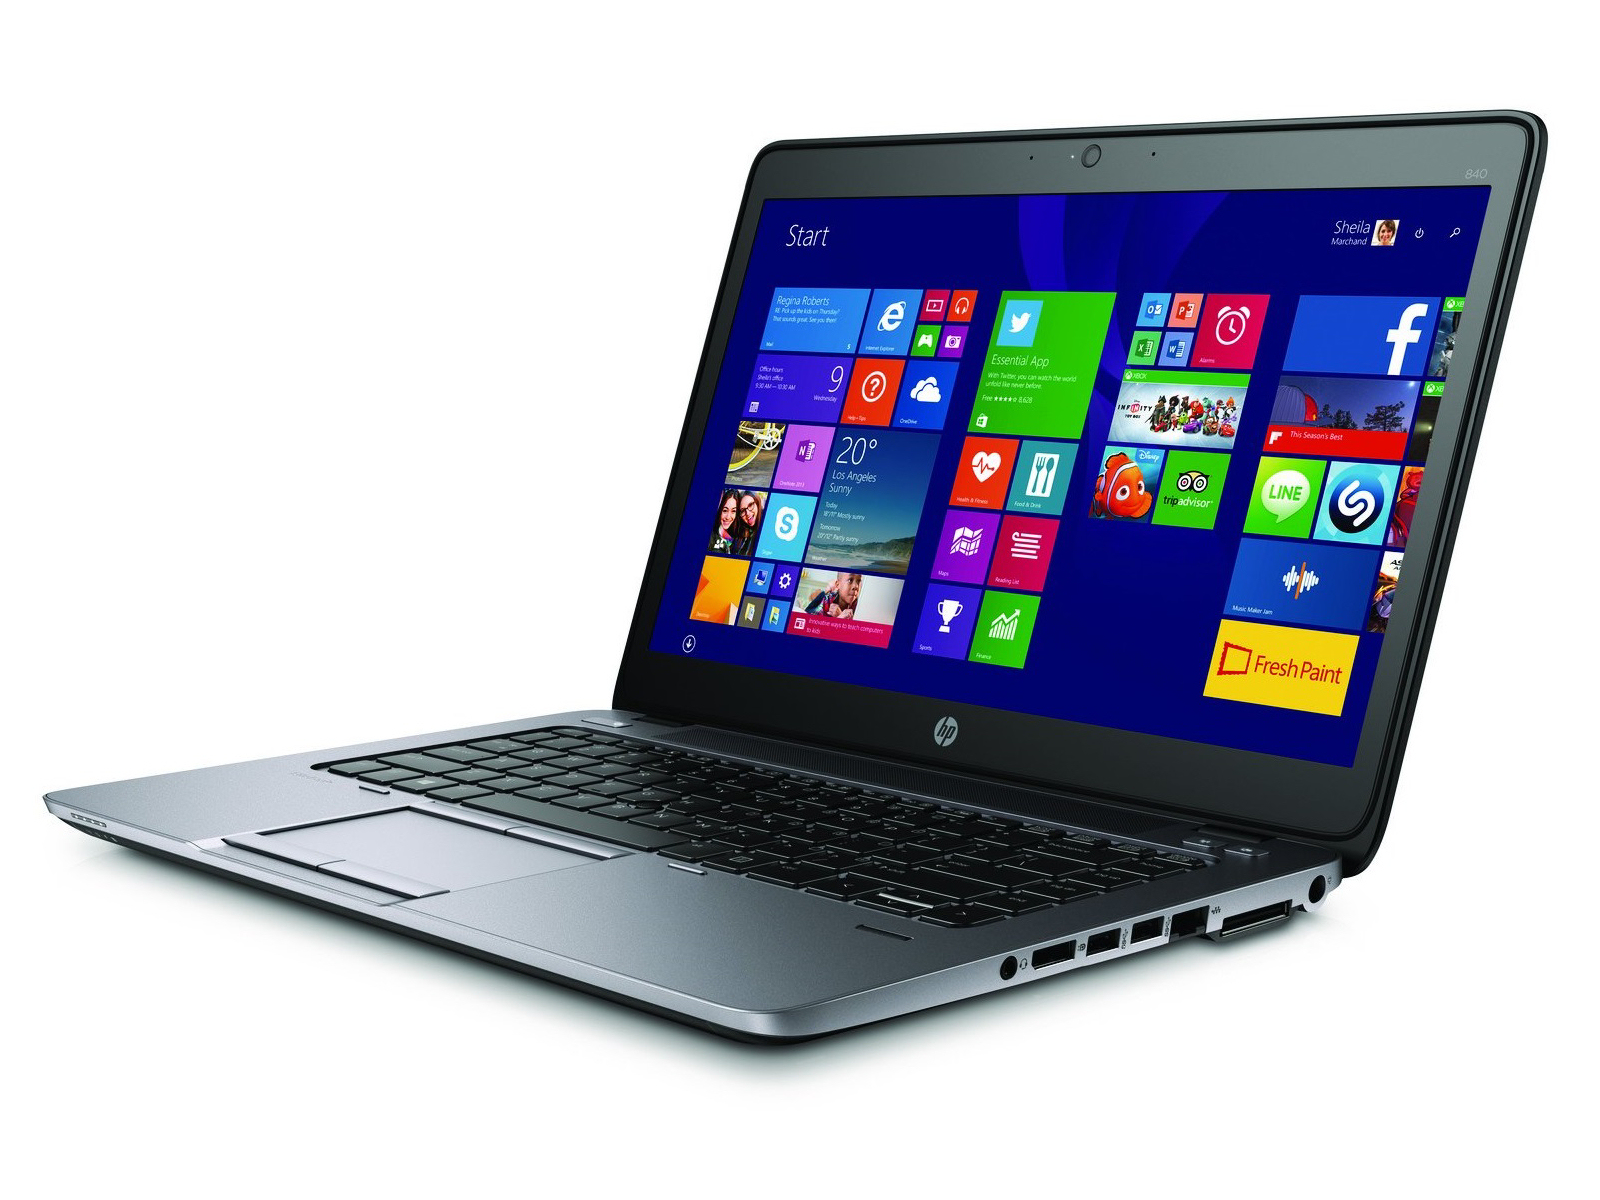 "Art. Portátil Ultrabook Hp EliteBook 840 G2 (Intel Core i5 5200u 2.20Ghz/4GB/128GB-SSD/14""/NO-DVD/W8P) Preinstalado"